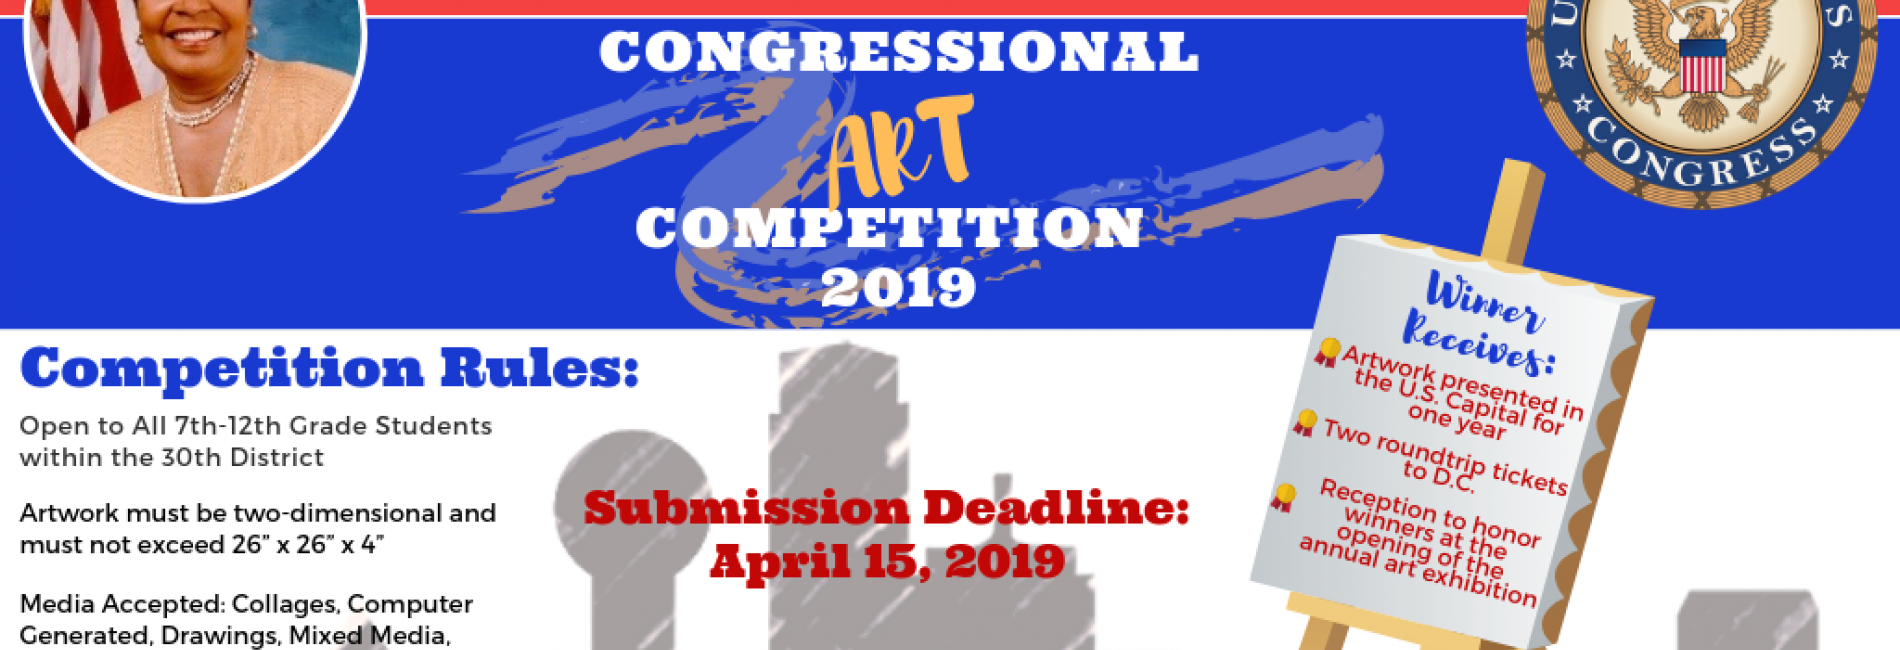 Congressional Art Competition Social Flyer 2019